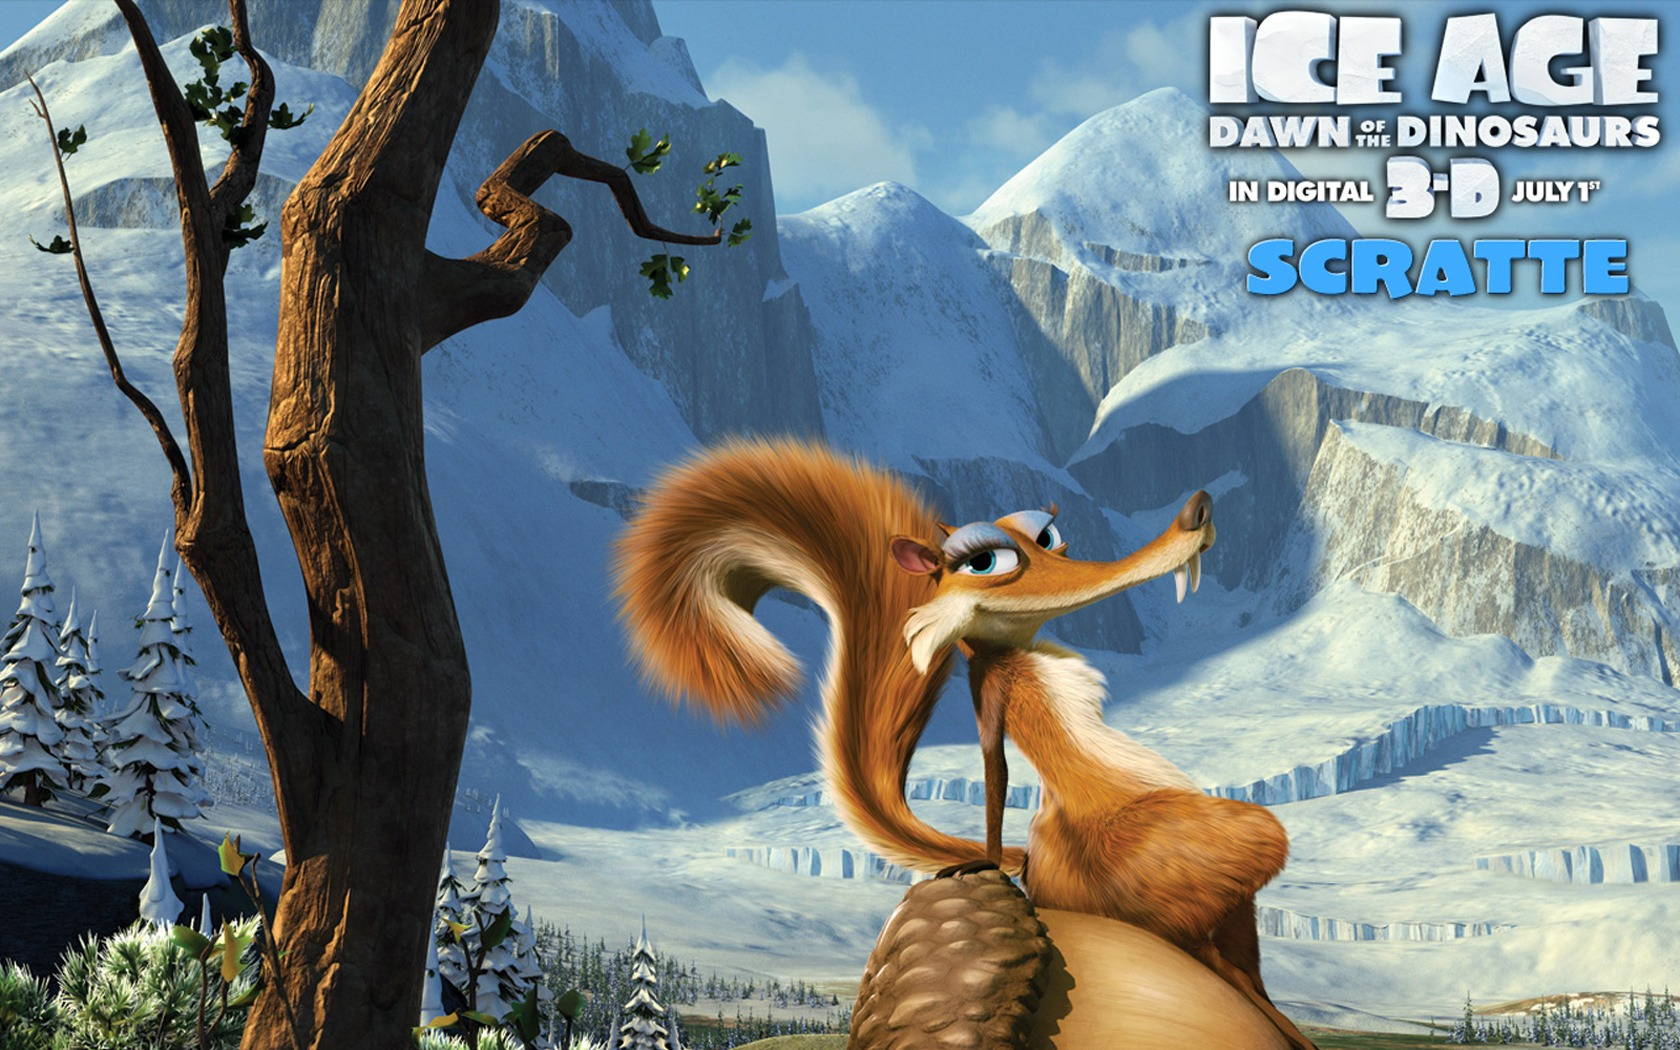 Ice age 3 dawn of the dinosaurs cartoon background for lumia.